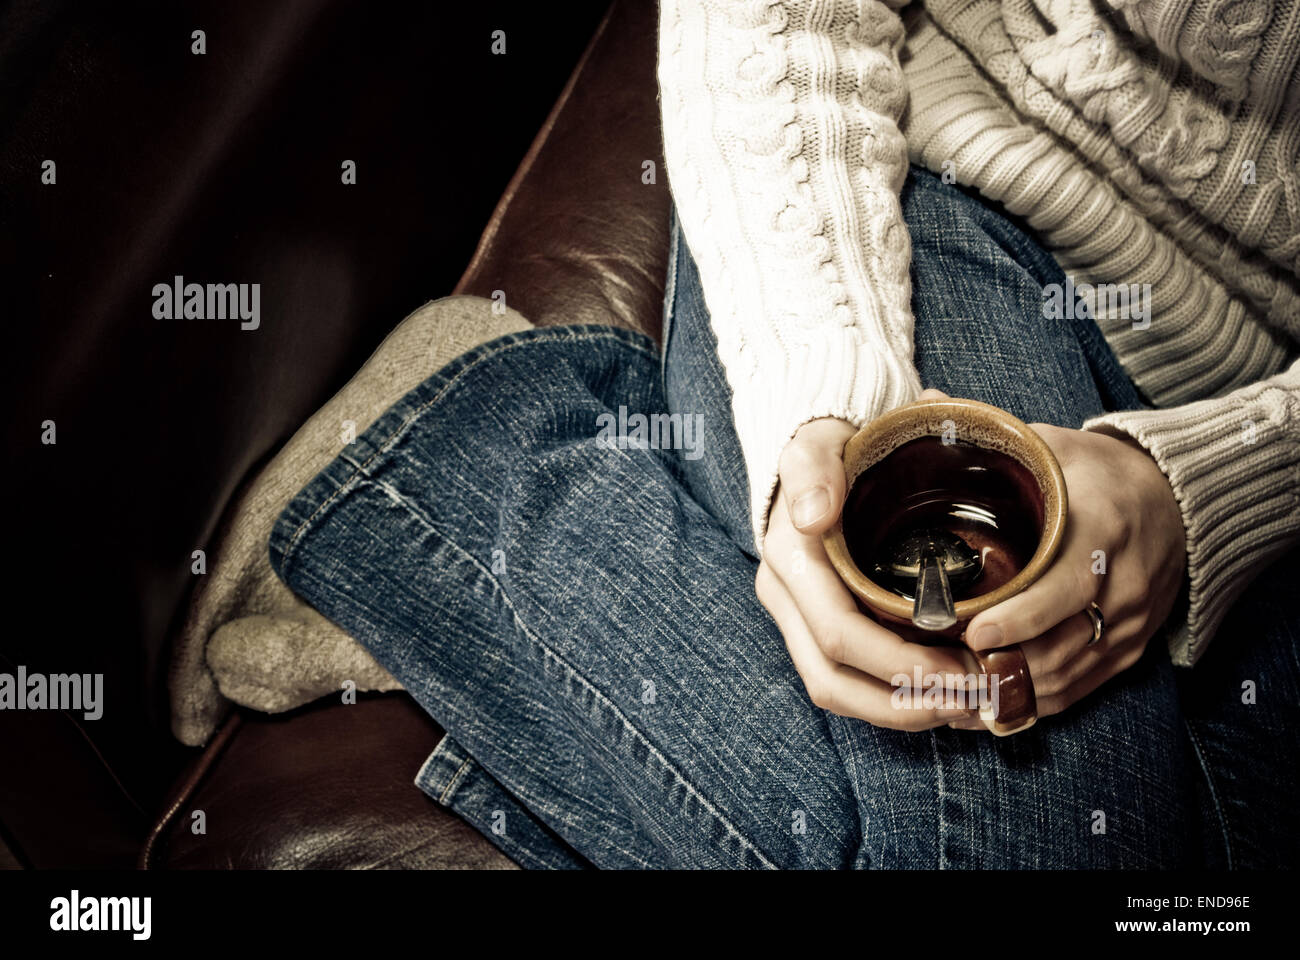 Girl holding a cup of tea - Stock Image